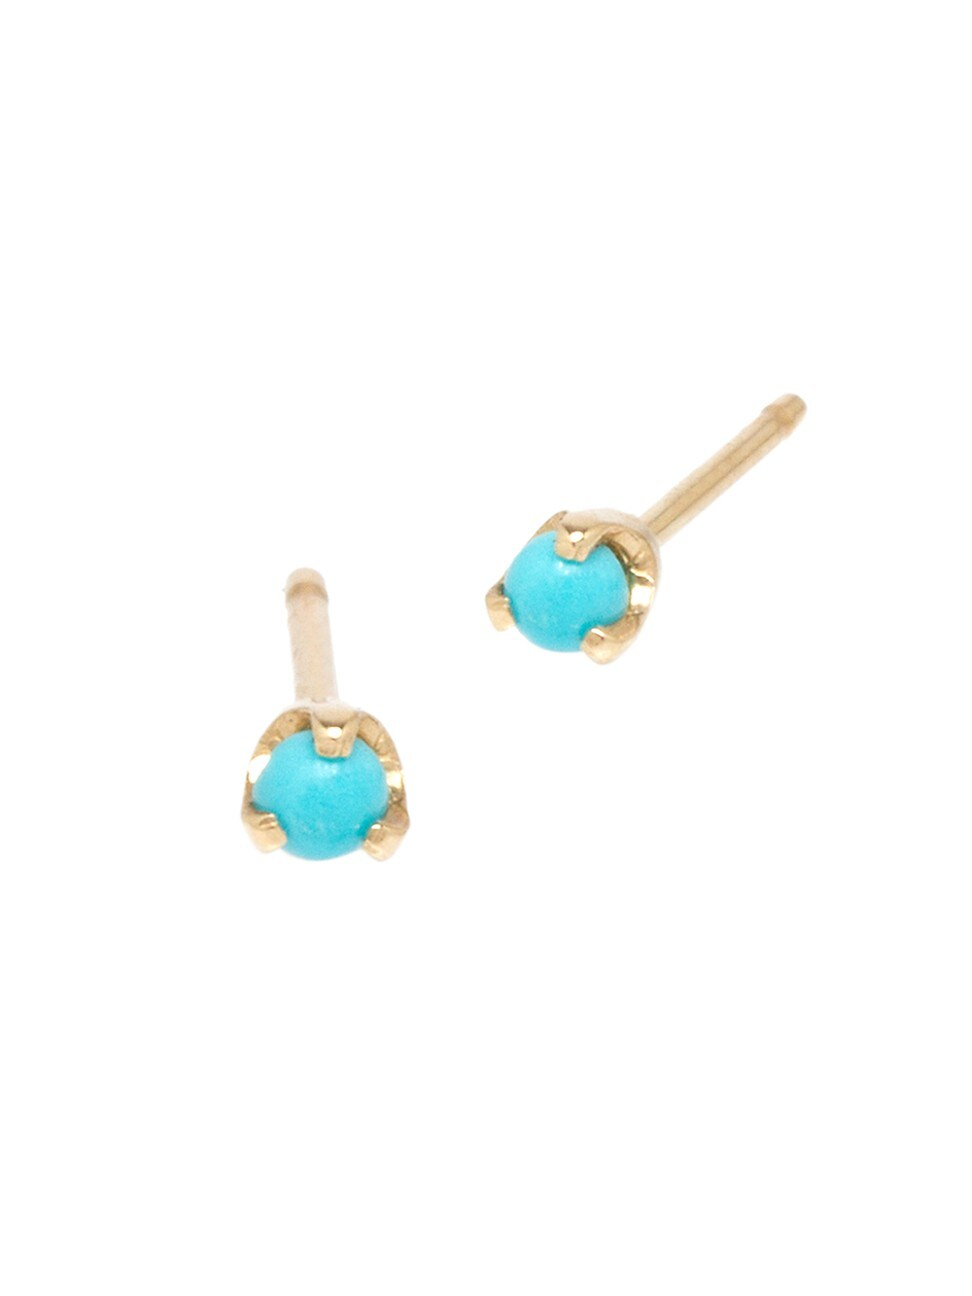 Zoë Chicco Women's 14k Yellow Gold & Turquoise Stud Earrings